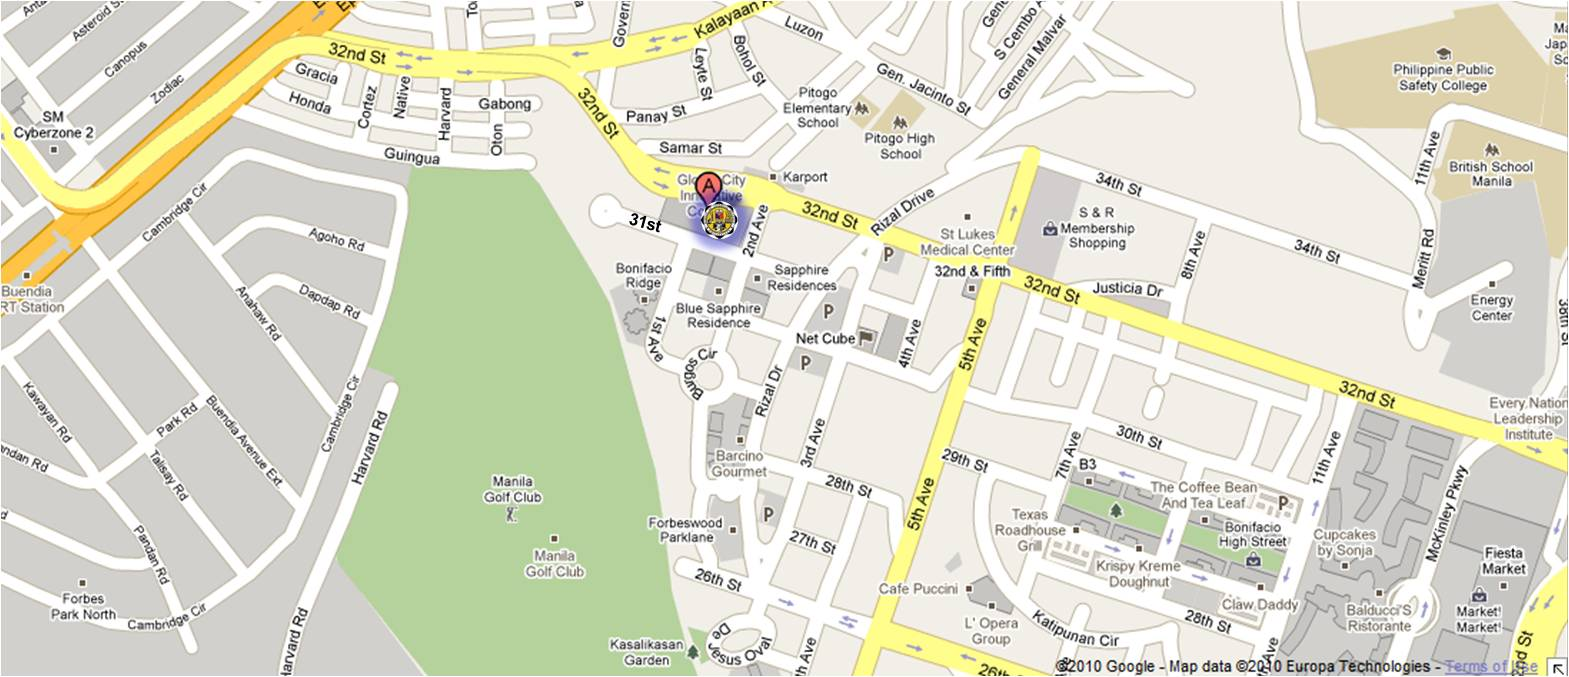 Map Location of RDO 44 - Taguig City